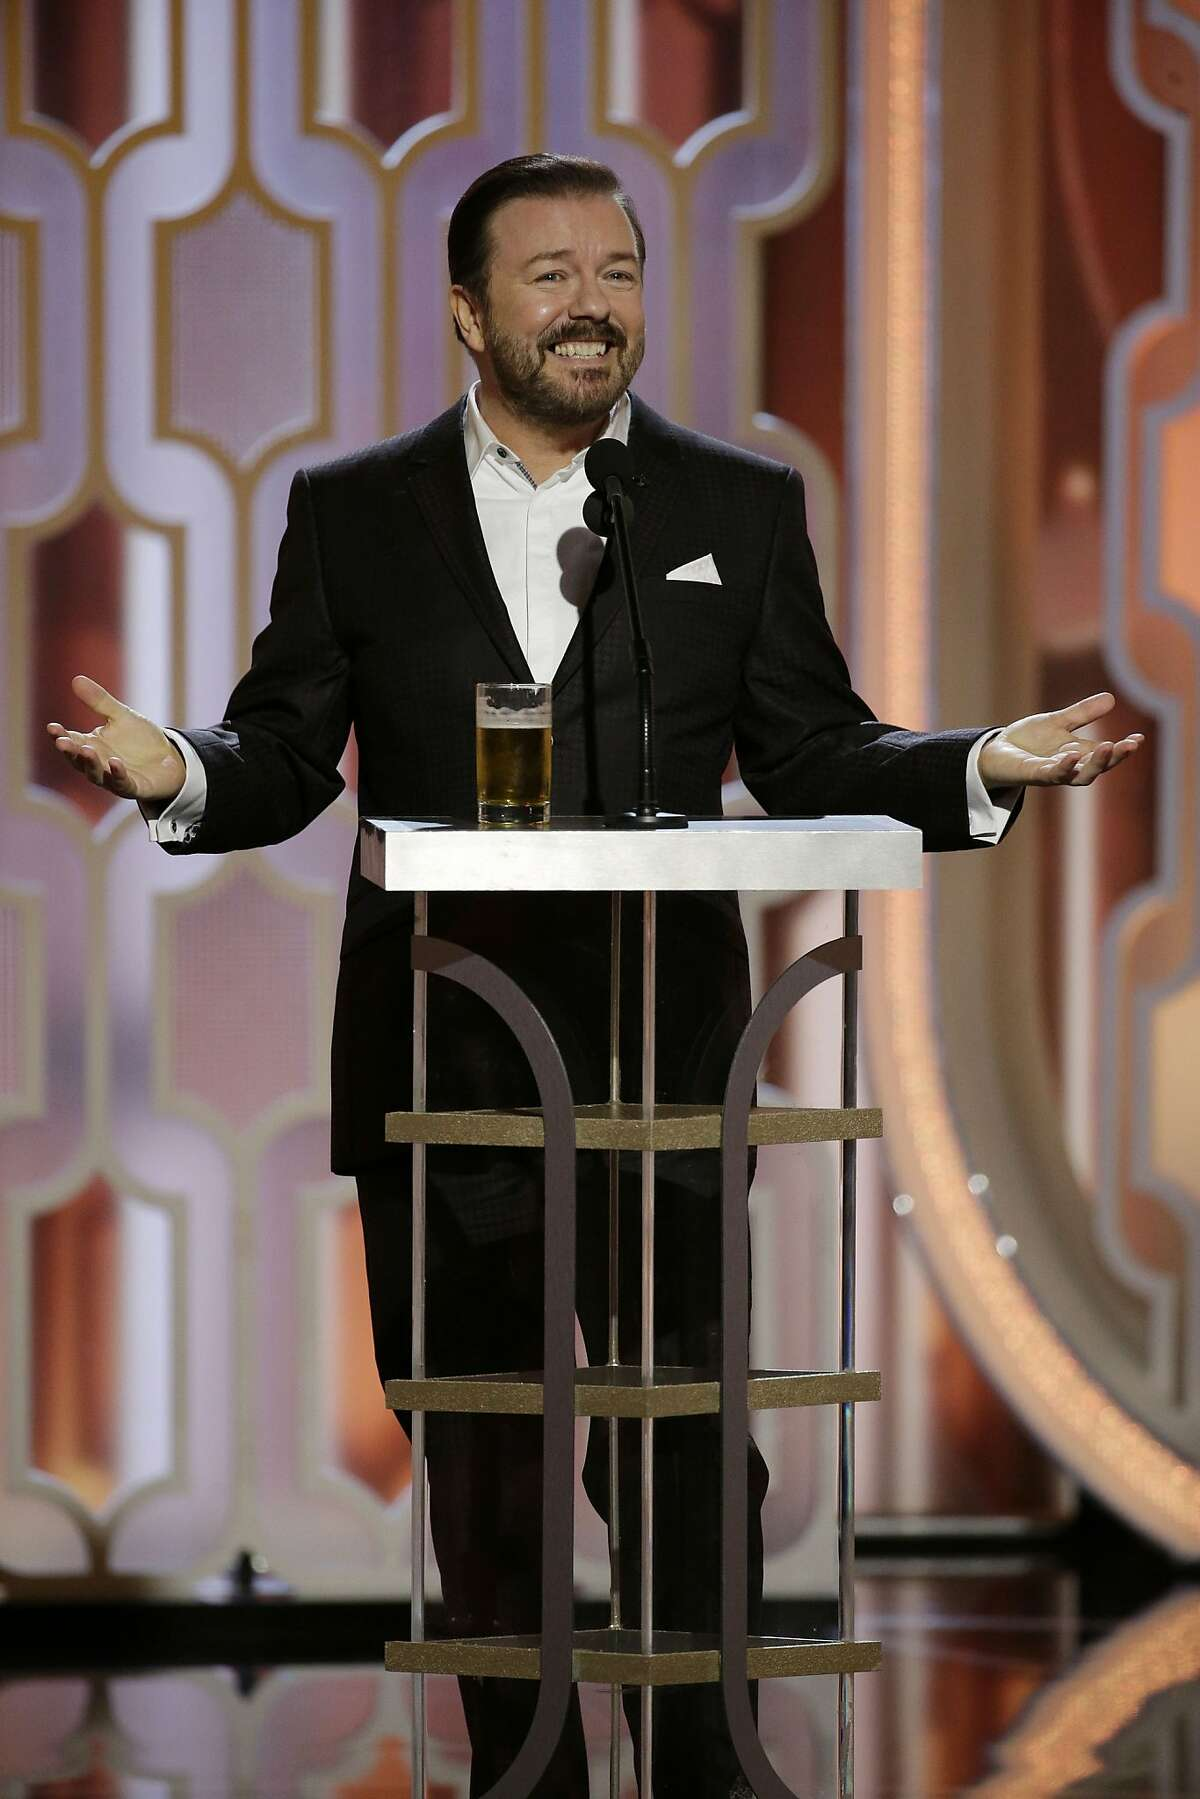 In this handout photo provided by NBCUniversal, Host Ricky Gervais speaks onstage during the 73rd annual Golden Globe Awards at the Beverly Hilton Hotel on Jan. 10, 2016 in Beverly Hills, California.